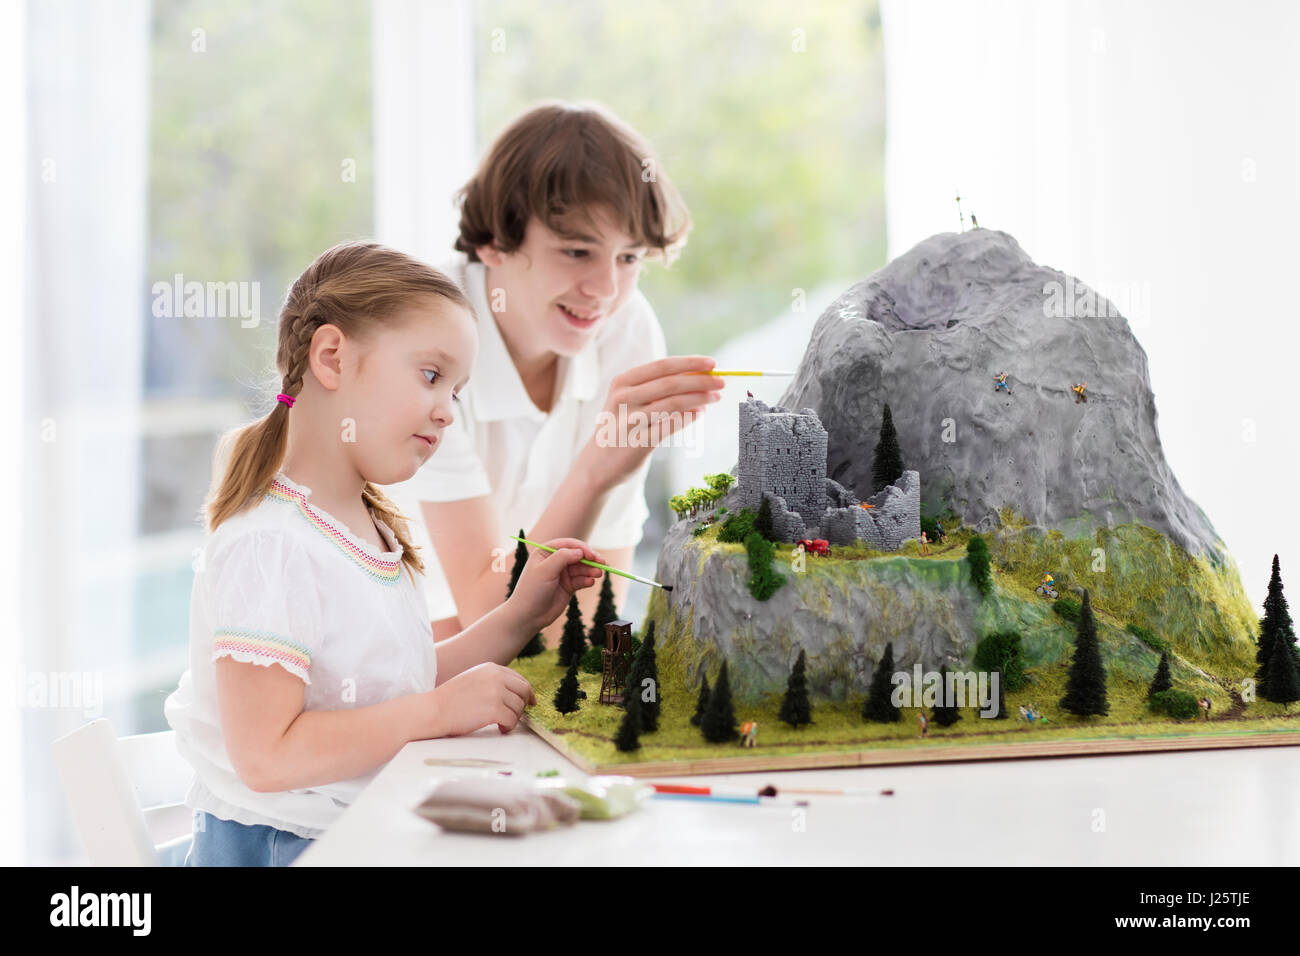 Children work on model building school project. Kids build miniature scale model mountain for geography class. Extracurricular - Stock Image